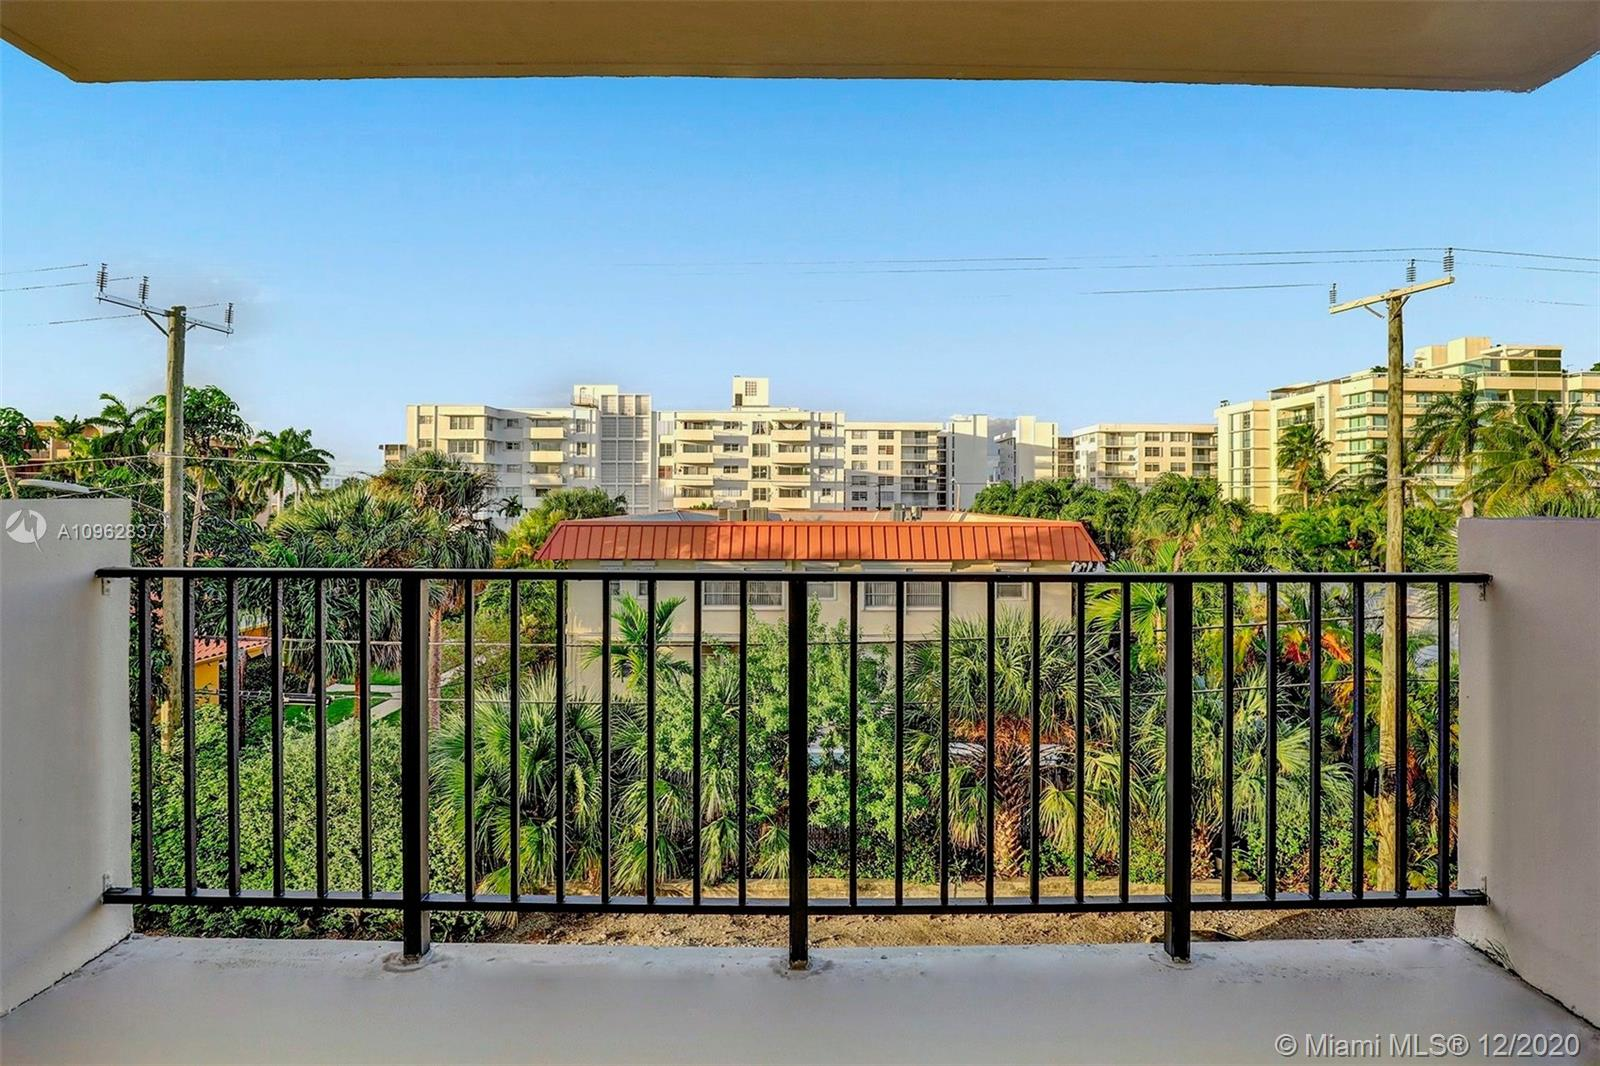 Gorgeous Corner Unit in the Heart of Bay Harbor Islands WITH PARKING!!!! Enjoy Bright Natural Light, High Ceilings, a Large Private Balcony, and a Beautiful Open Floorplan. Master Bedroom has 2 large closets. Freshly painted white and ALL NEW beautiful carpet throughout the unit! Ideally Located in one of America's SAFEST neighborhood and just a short stroll to top A+ school Ruth Broad K-8, Bal Harbor Shops, wonderful dining, lovely parks, and phenomenal beaches. Nice well maintained building with billiard room, party room, bike rack, gym and pool. ASK LISTING AGENT ABOUT PREFERRED ZeroPlus FINANCING with ZERO LENDER FEES AVAILABLE!!